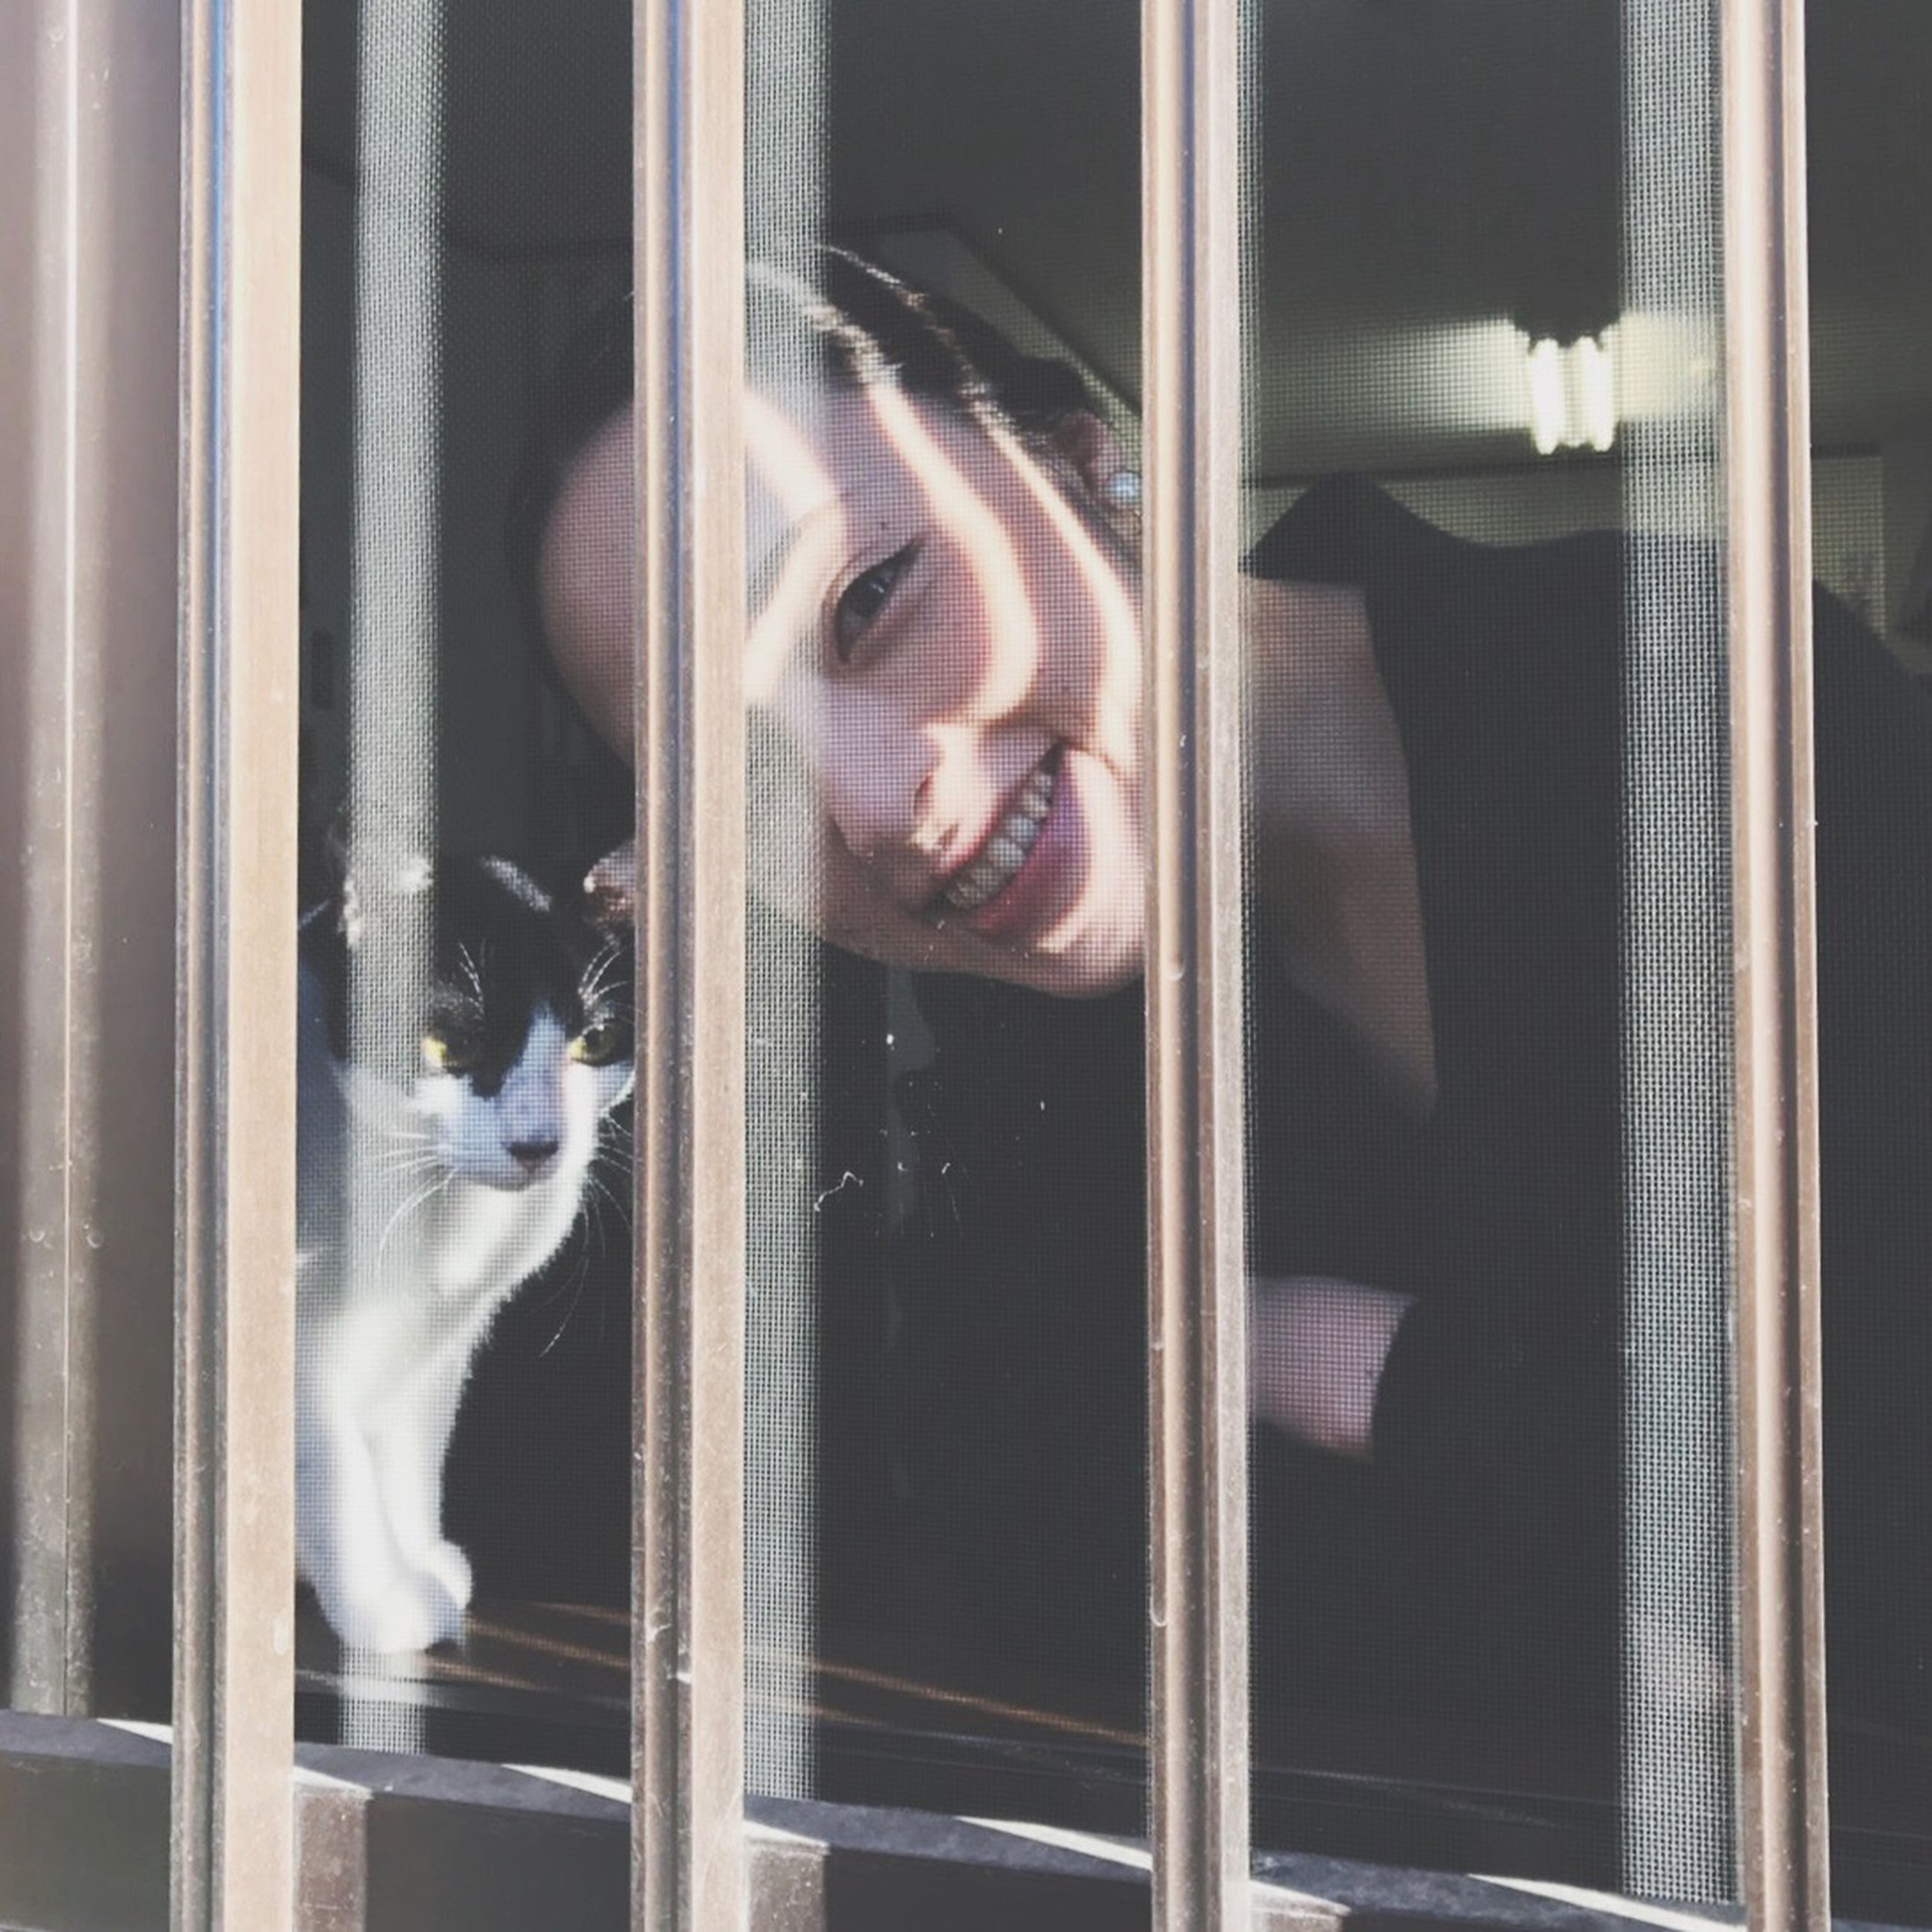 window, pets, domestic cat, real people, transparent, domestic animals, looking through window, one person, looking at camera, cat, indoors, animal themes, curtain, mammal, feline, watching, window sill, day, close-up, young adult, young women, human hand